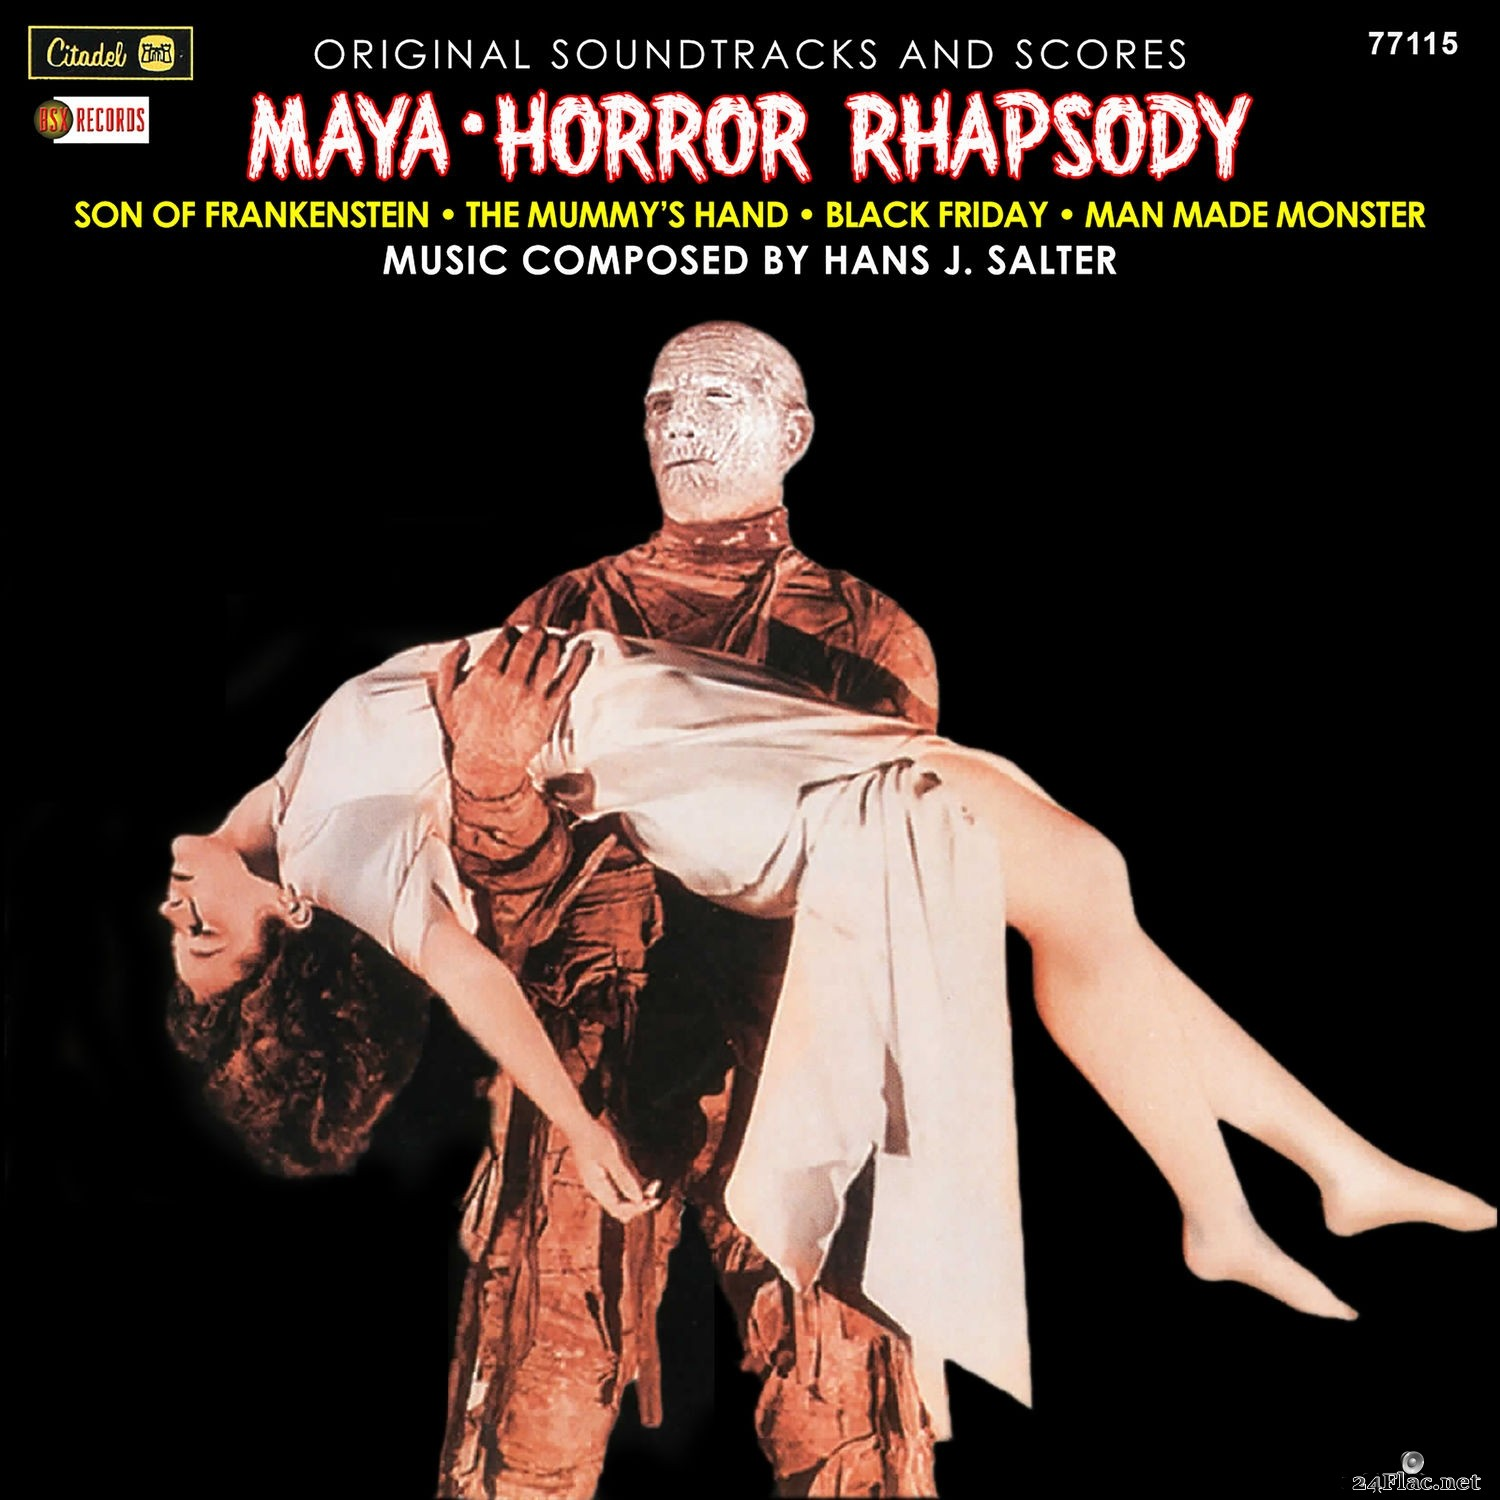 Hans J. Salter - Maya / Horror Rhapsody (Original Soundtracks And Scores) (2021) Hi-Res